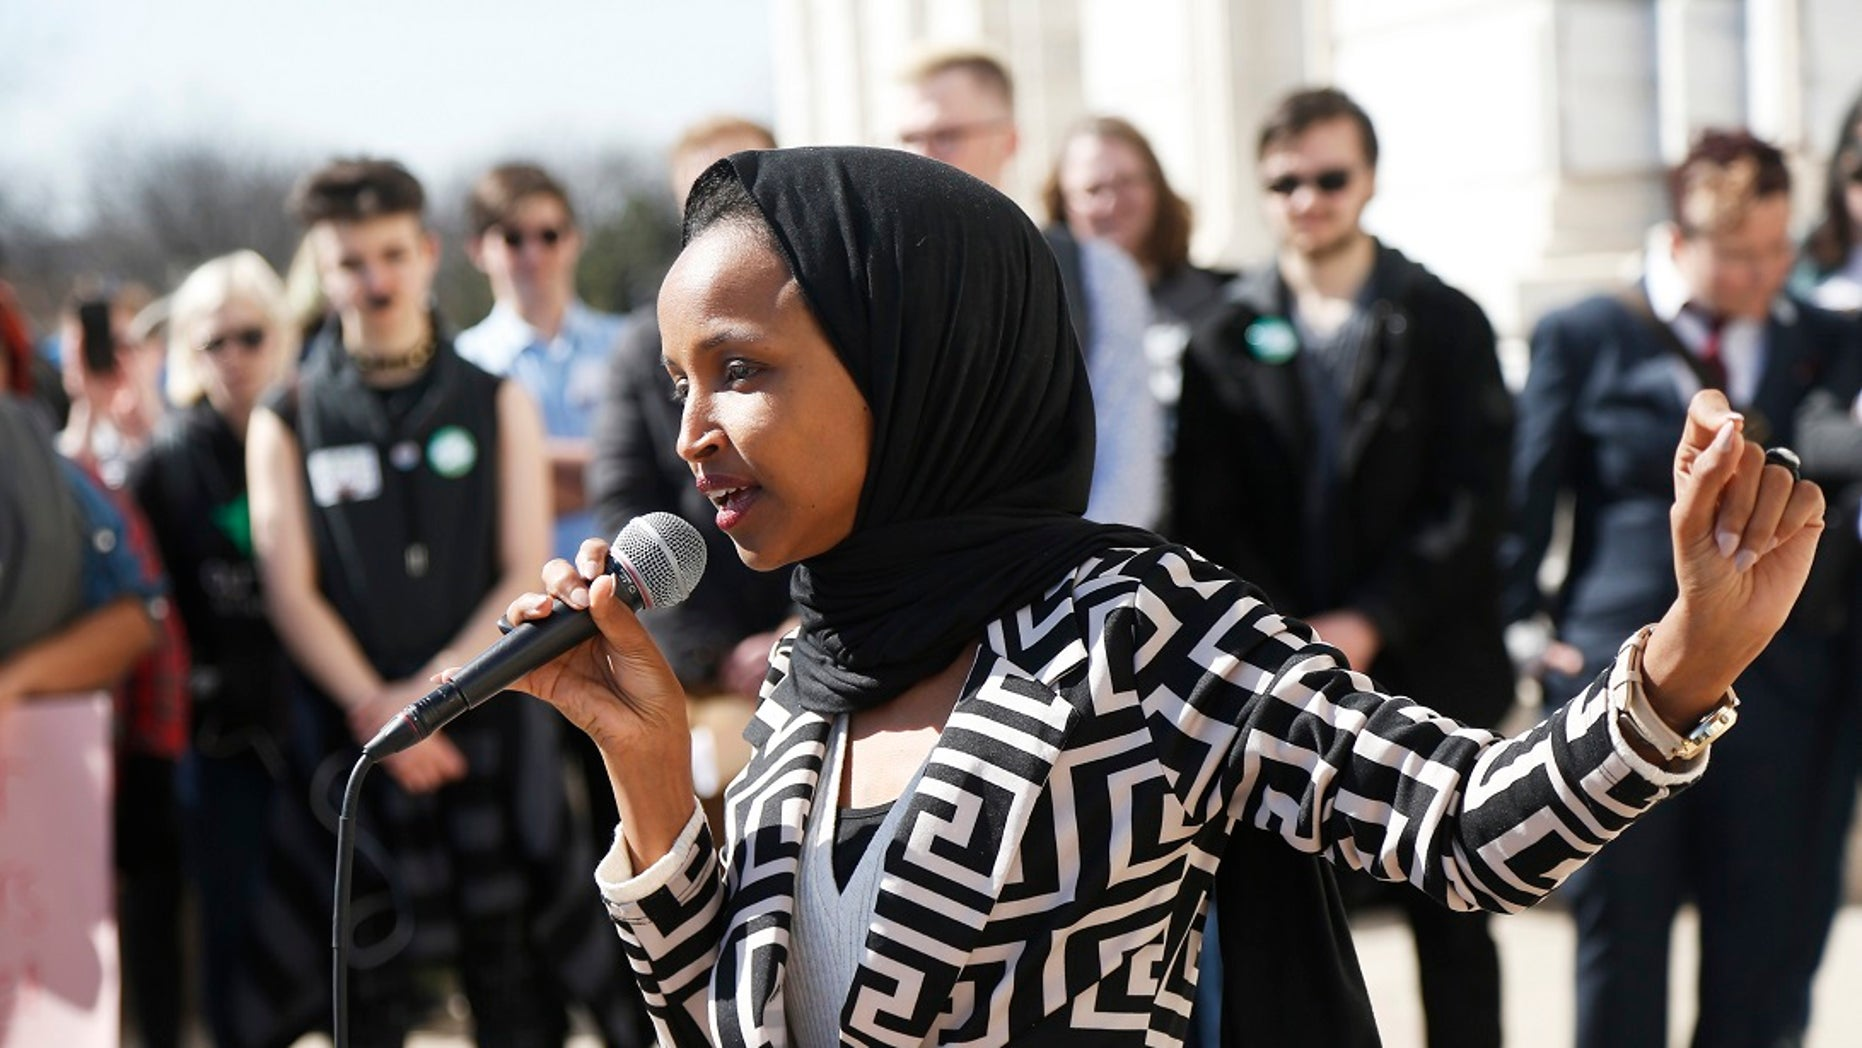 U.S. Rep Ilhan Omar, D-Minn., speaks to support LGBTQ and allied high school students from across the state of Minnesota outside the State Capitol in St. Paul, March 21, 2019. (Associated Press)